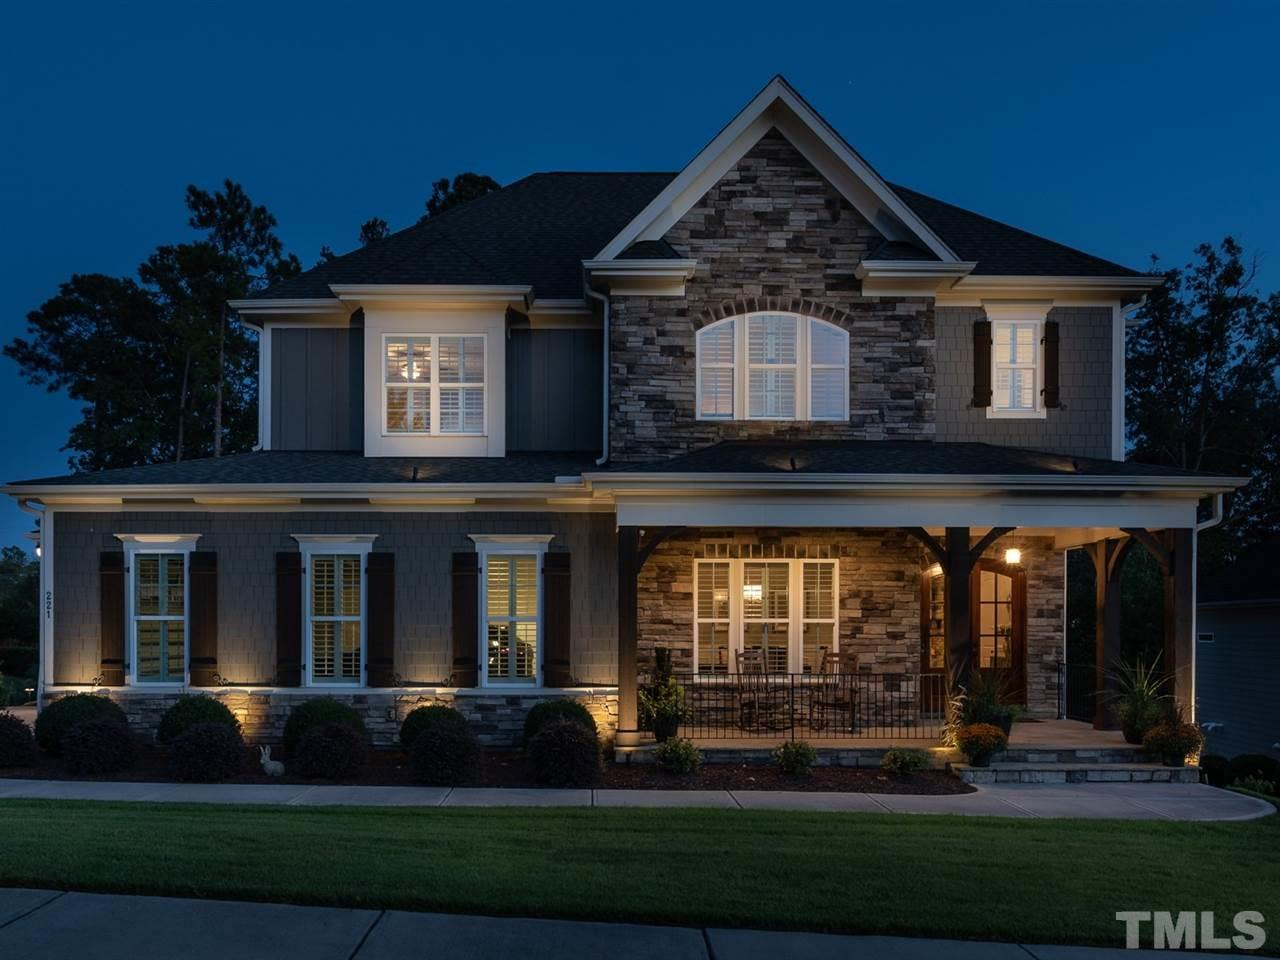 12 Oaks welcomes you to this 5br 5ba fully custom home with well appointed finishes throughout. 10' ceilings on main level cover a formal DR, large open FR with stone fireplace, eat-in kitchen island, custom cabinetry, and large breakfast area overlooking private backyard. Guest room on main level perfect for overnight guests. 4 spacious br's & 3ba upstairs. Basement with huge bonus room, bar, brk area, theater room, wine cellar, safe room and ample storage. Outdoor living with fireplace, grill, firepit!!